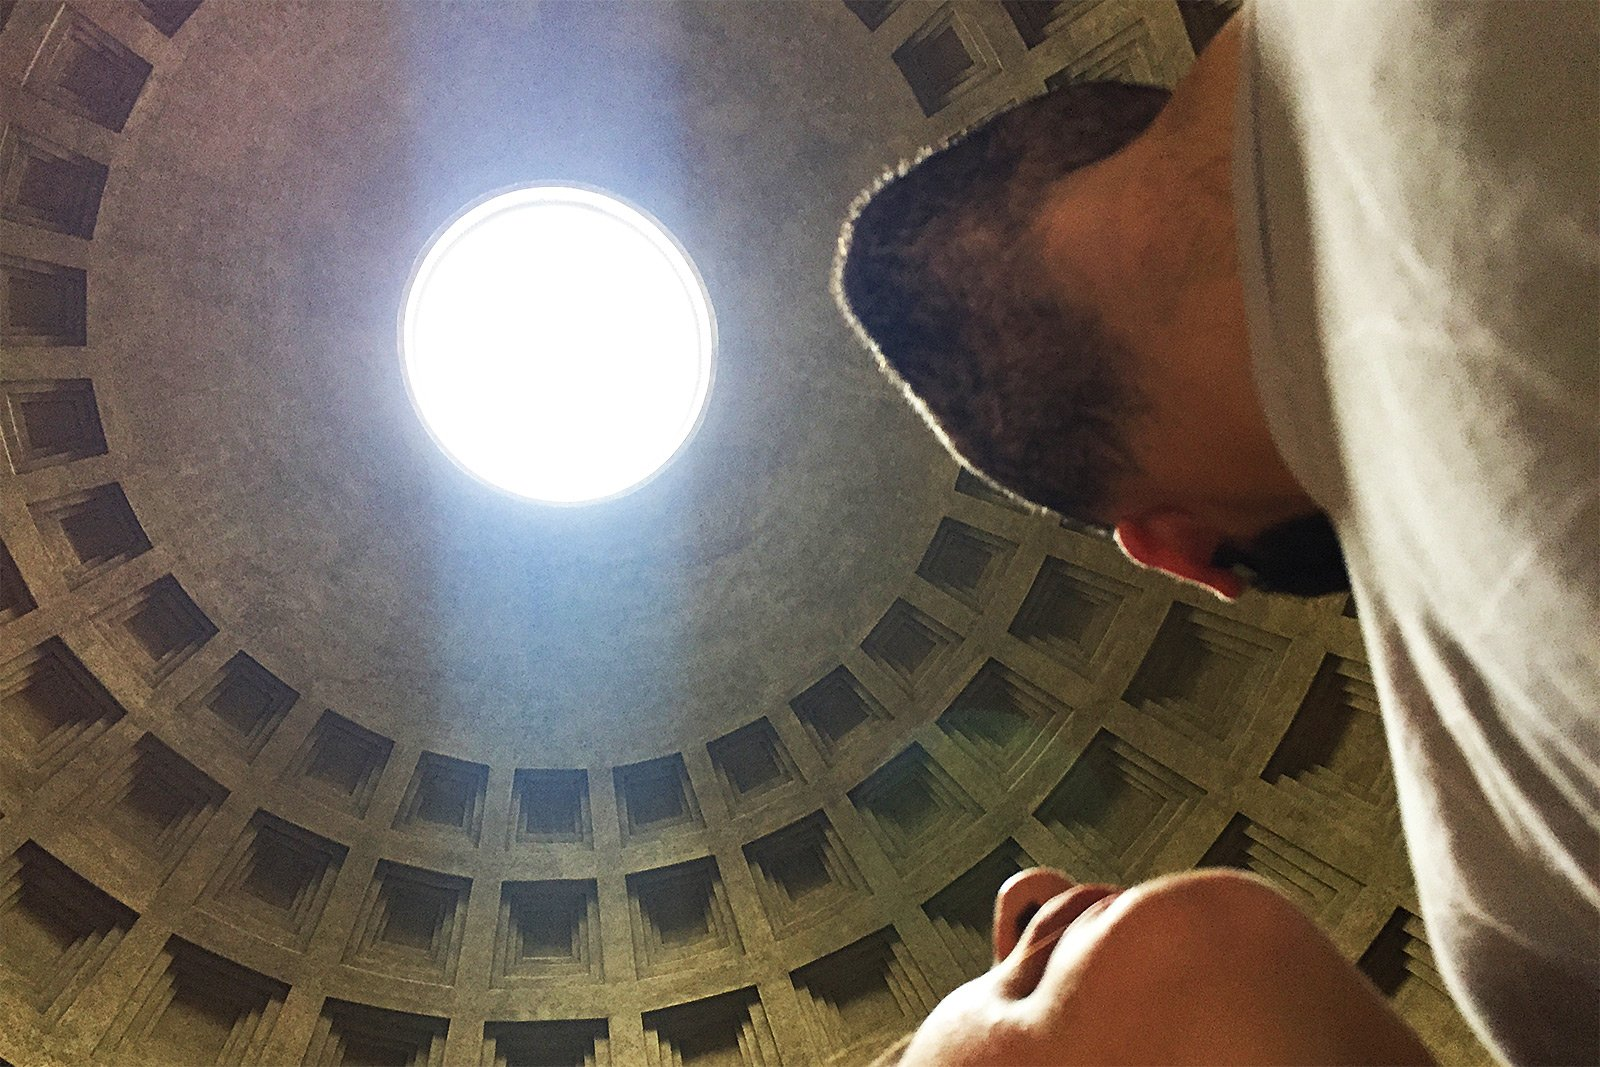 How to take an Oculus selfie in Rome